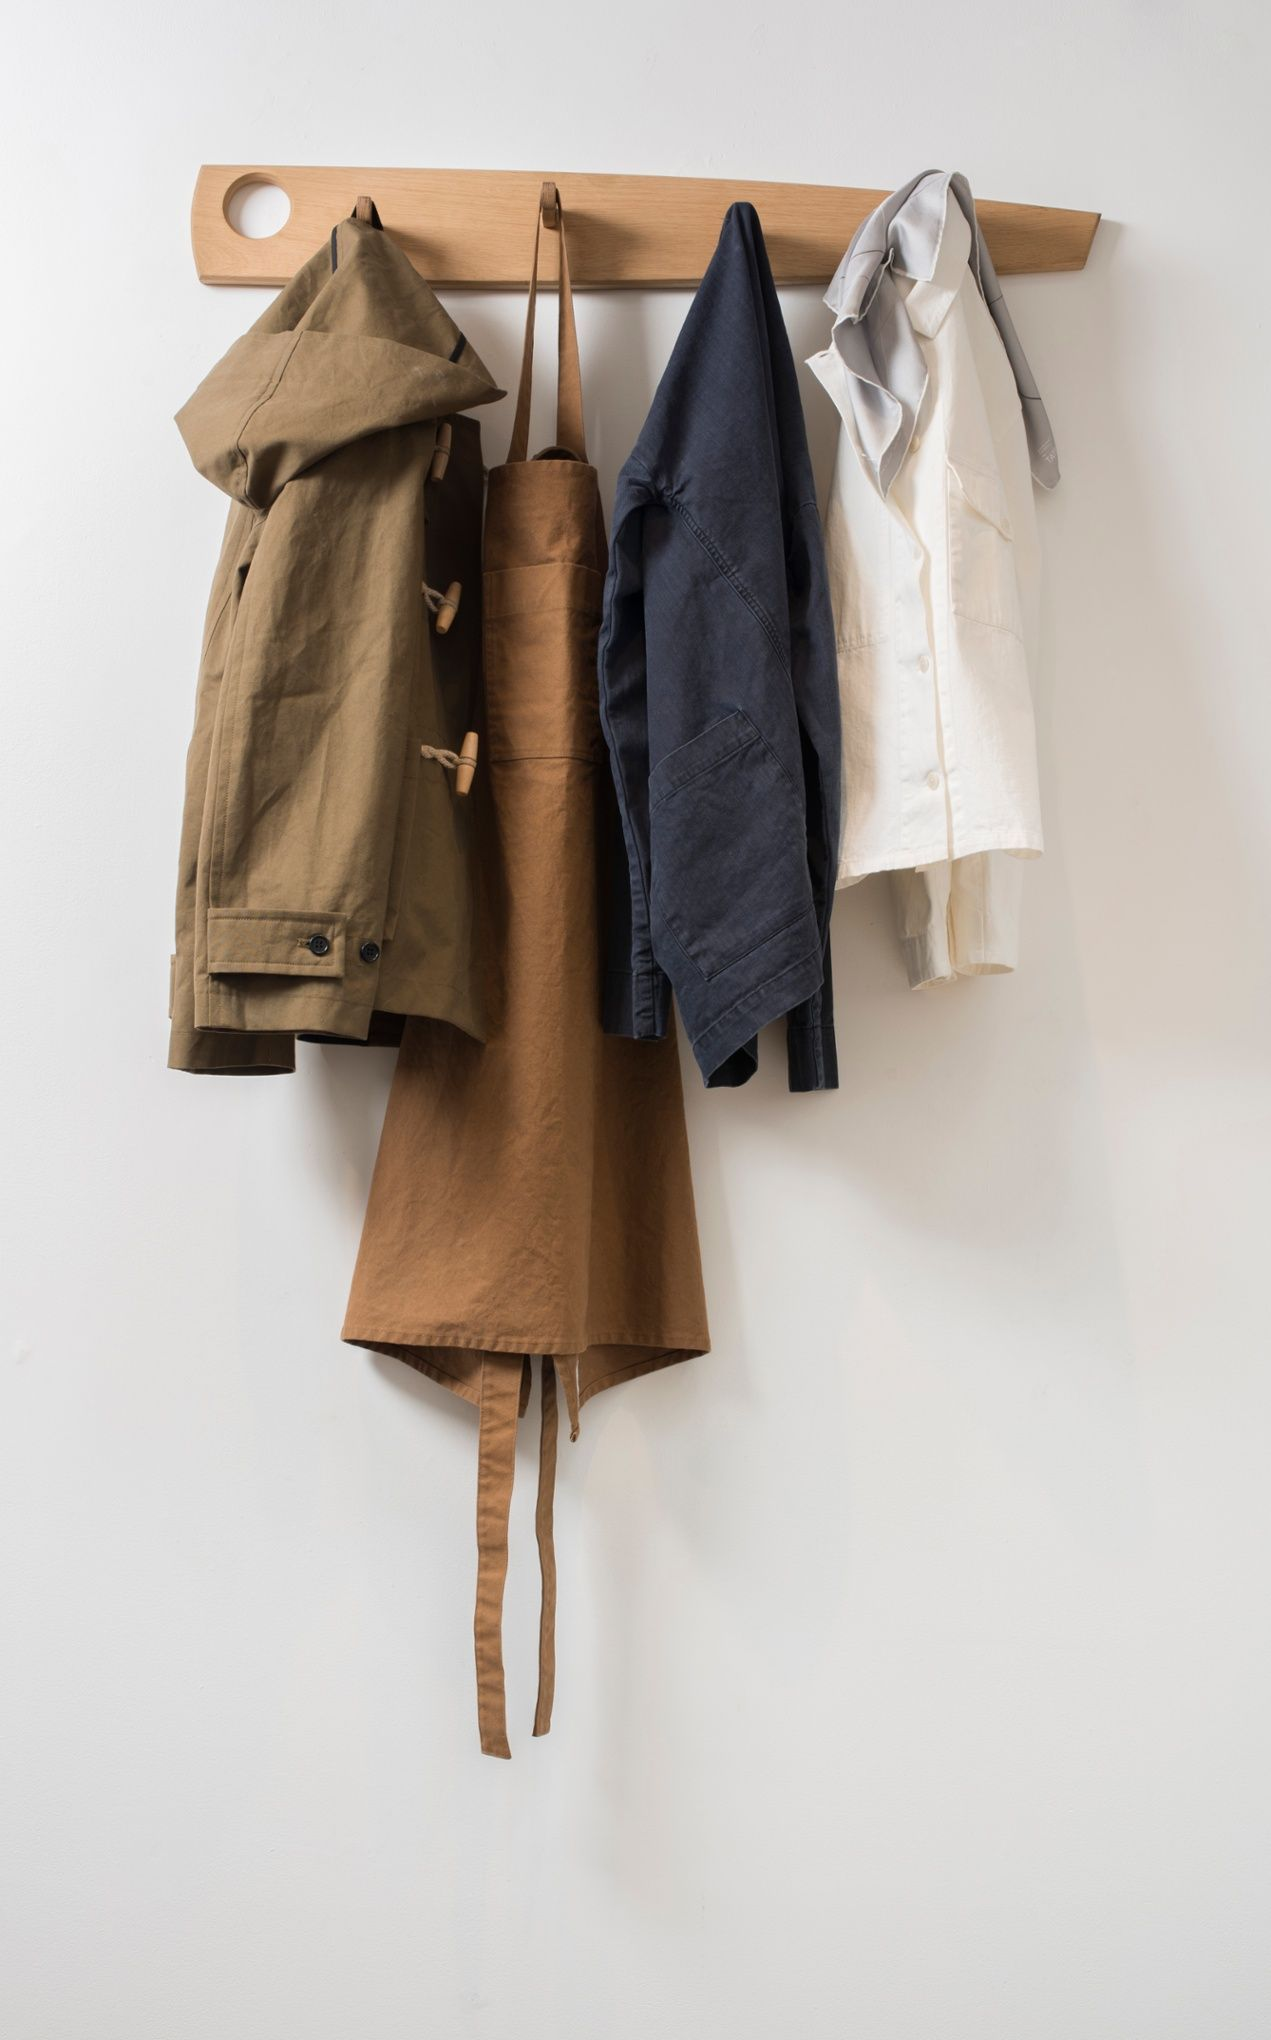 natural fit: Margaret Howell on her fashion tribute to Barbara Hepworth A natural fit: Margaret Howell on her fashion tribute to Barbara HepworthA natural fit: Margaret Howell on her fashion tribute to Barbara Hepworth